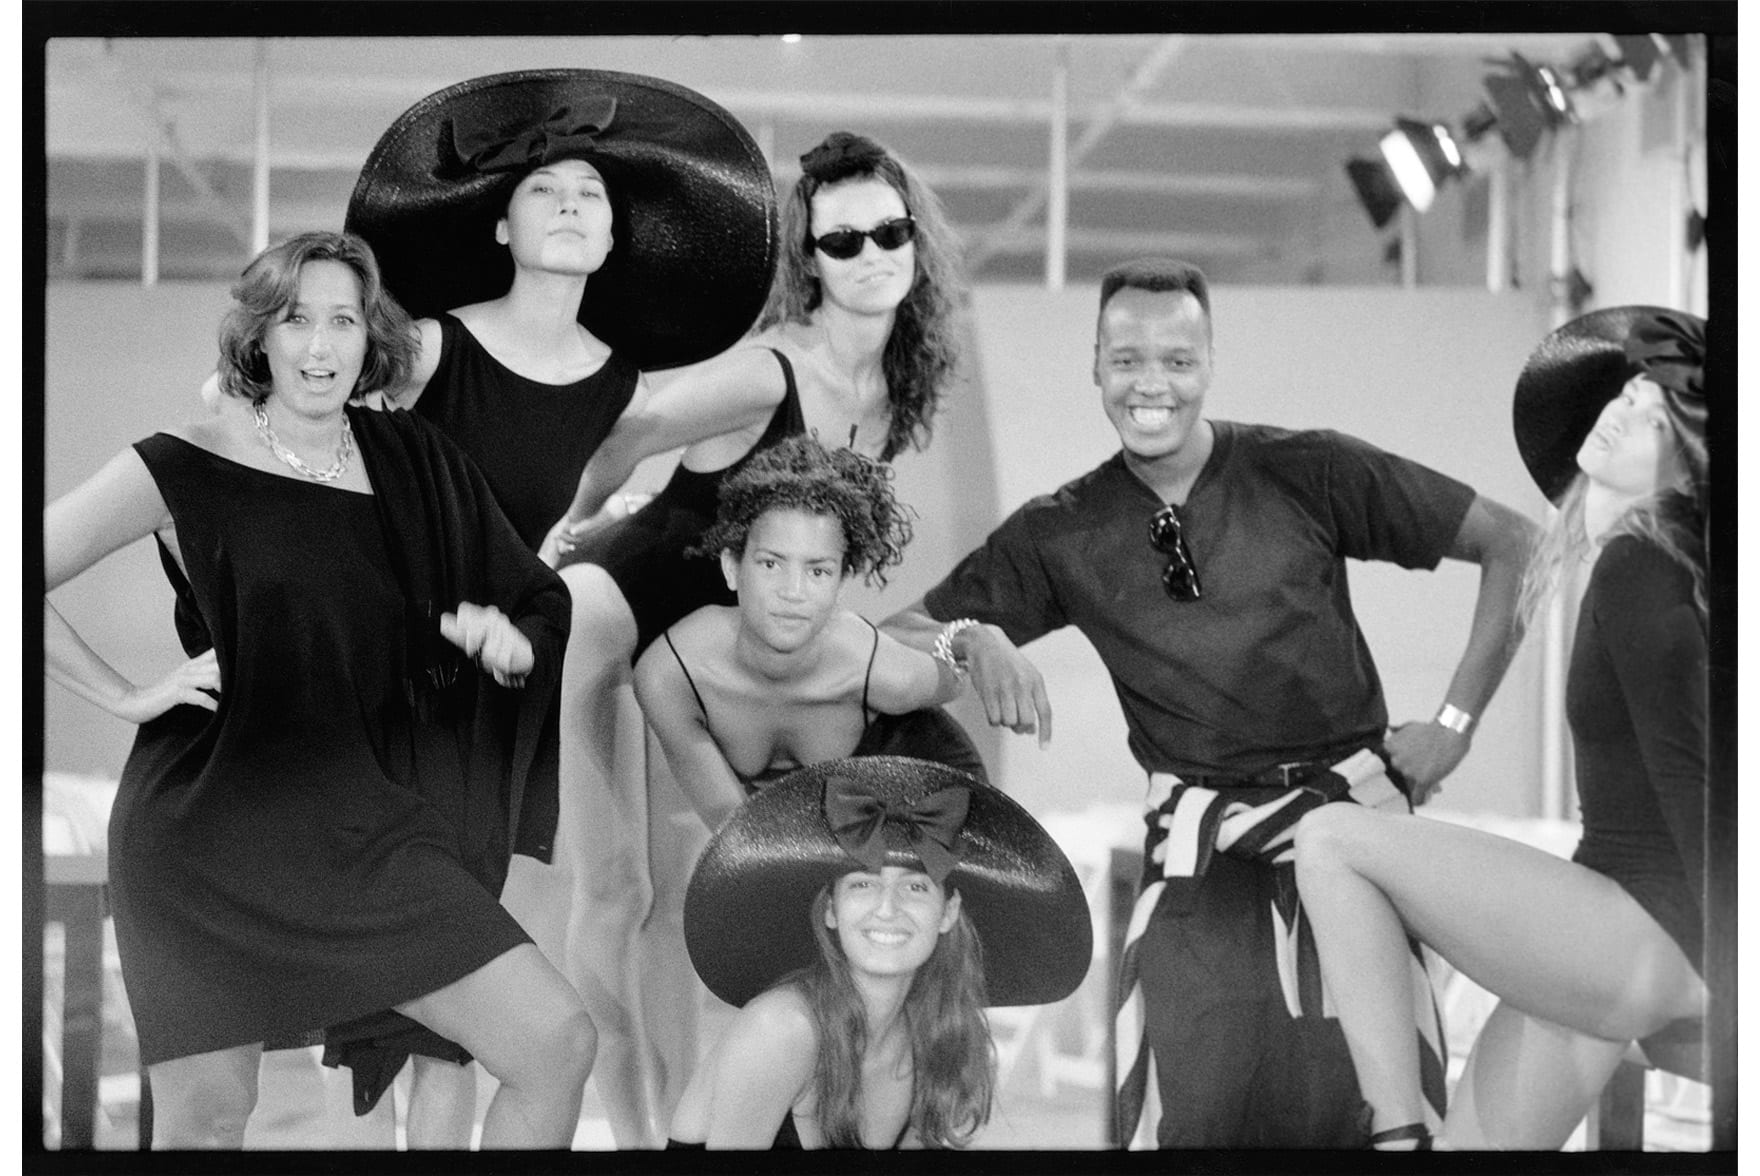 Donna Karan, Edward Wilkerson and models.